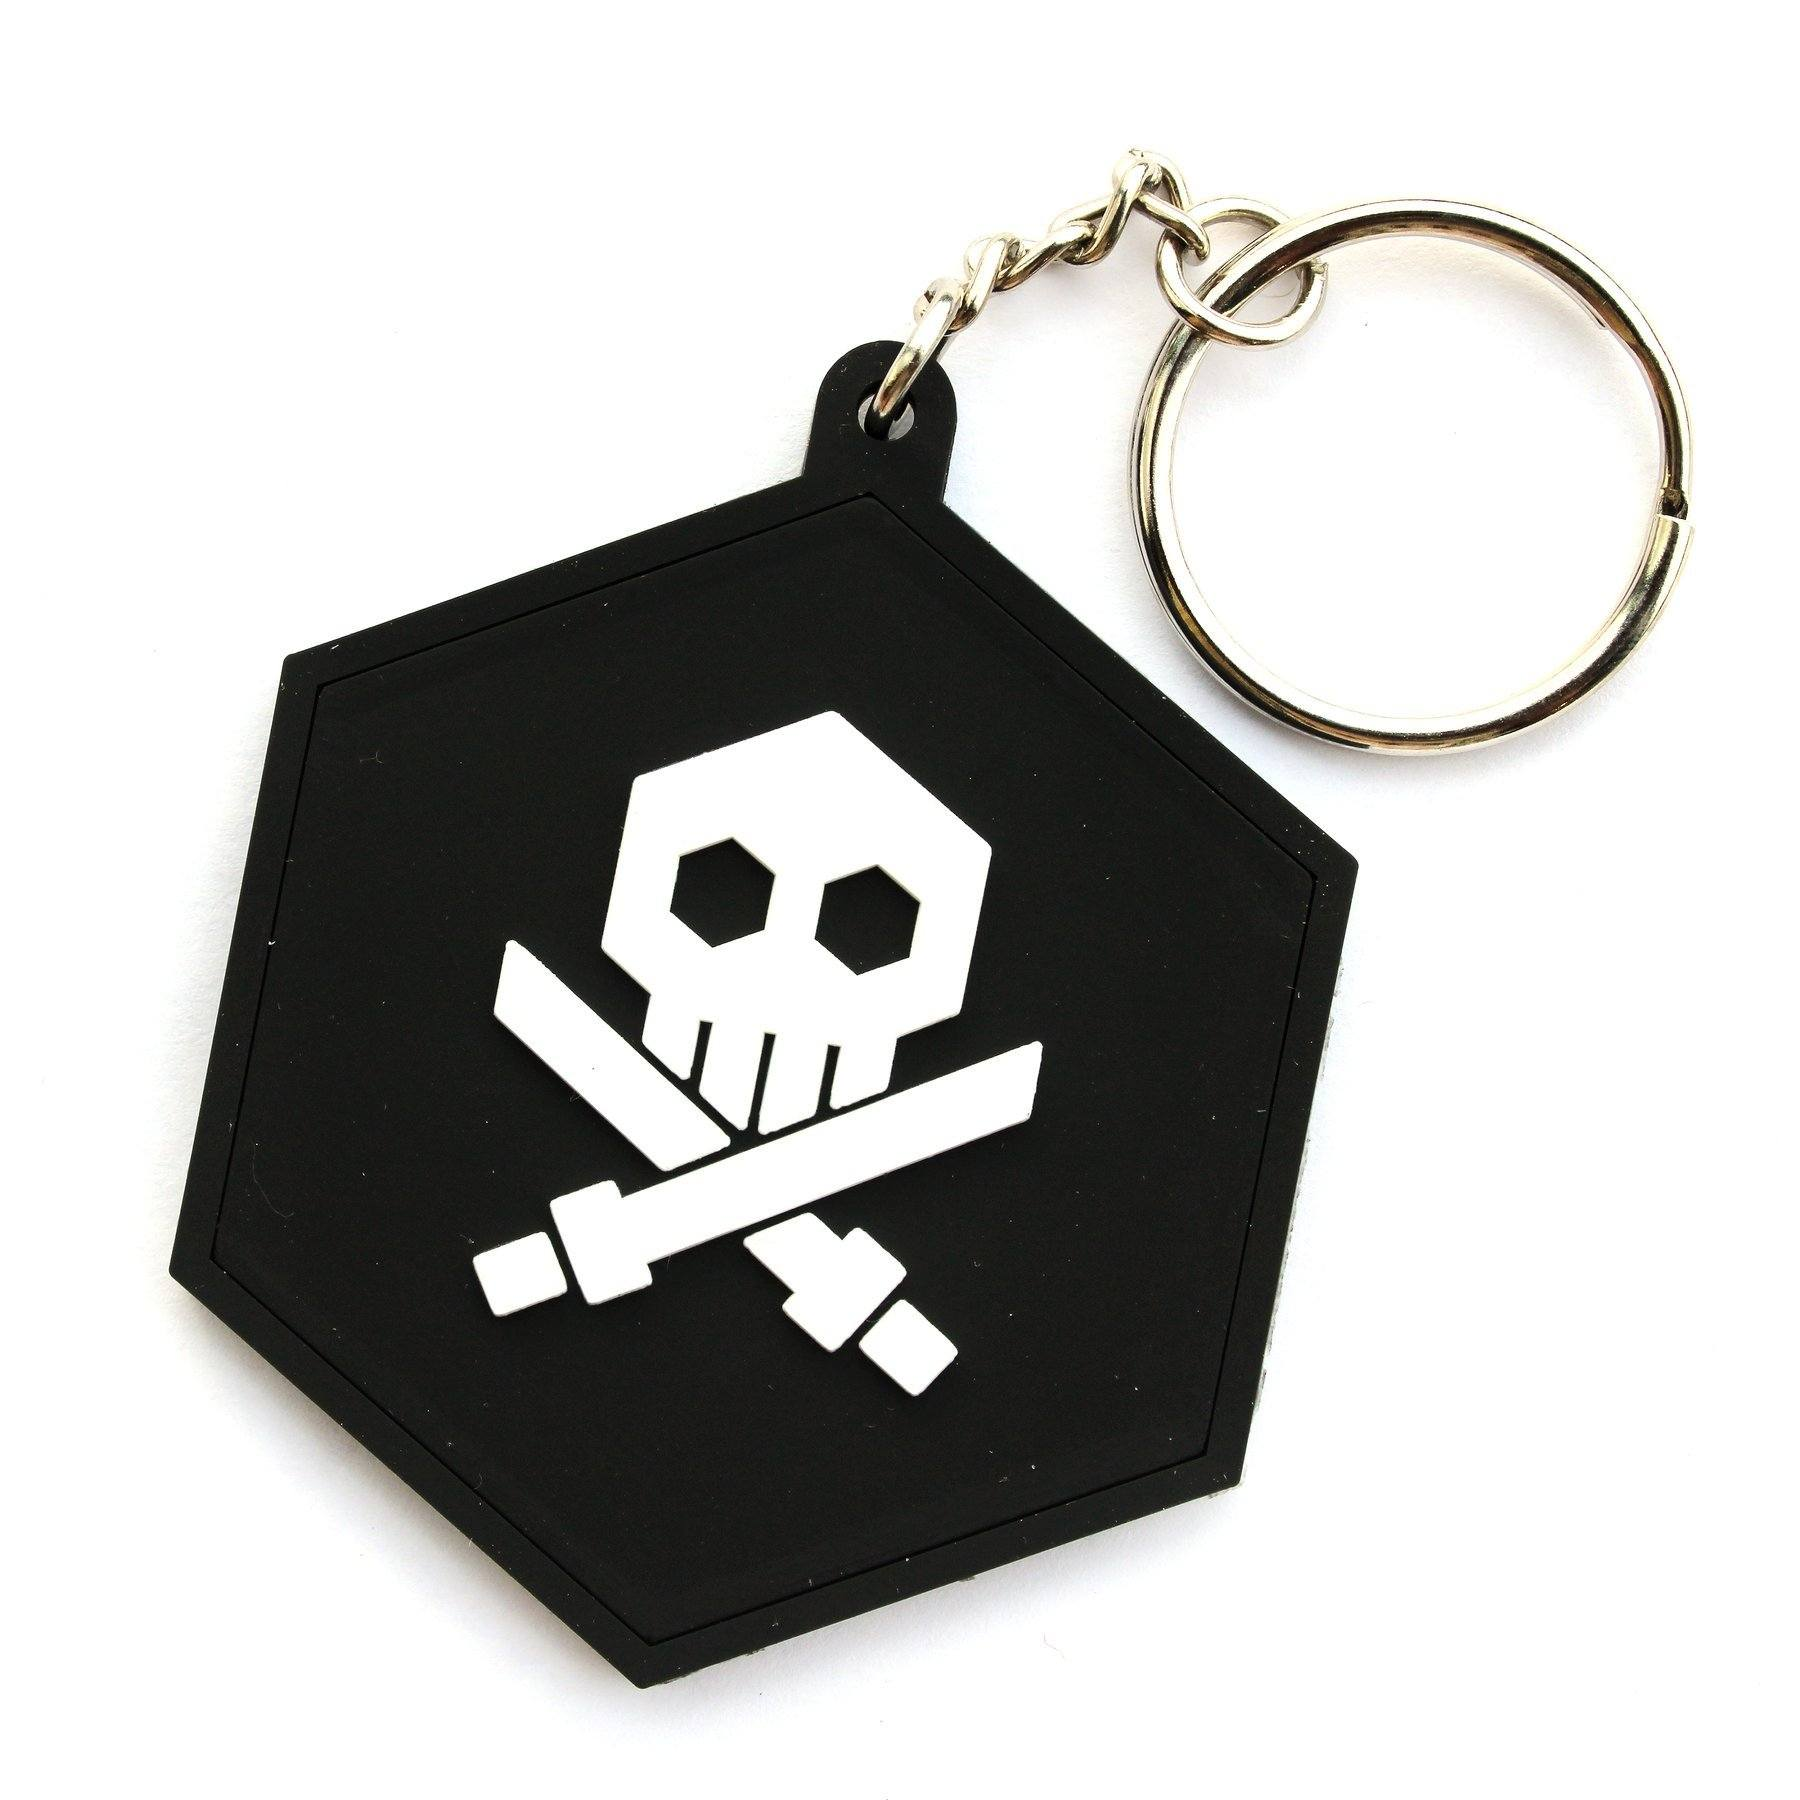 "Bulletpunk 2"" Rubber Keychain by Quiccs & Martian Toys Keychain Martian Toys"